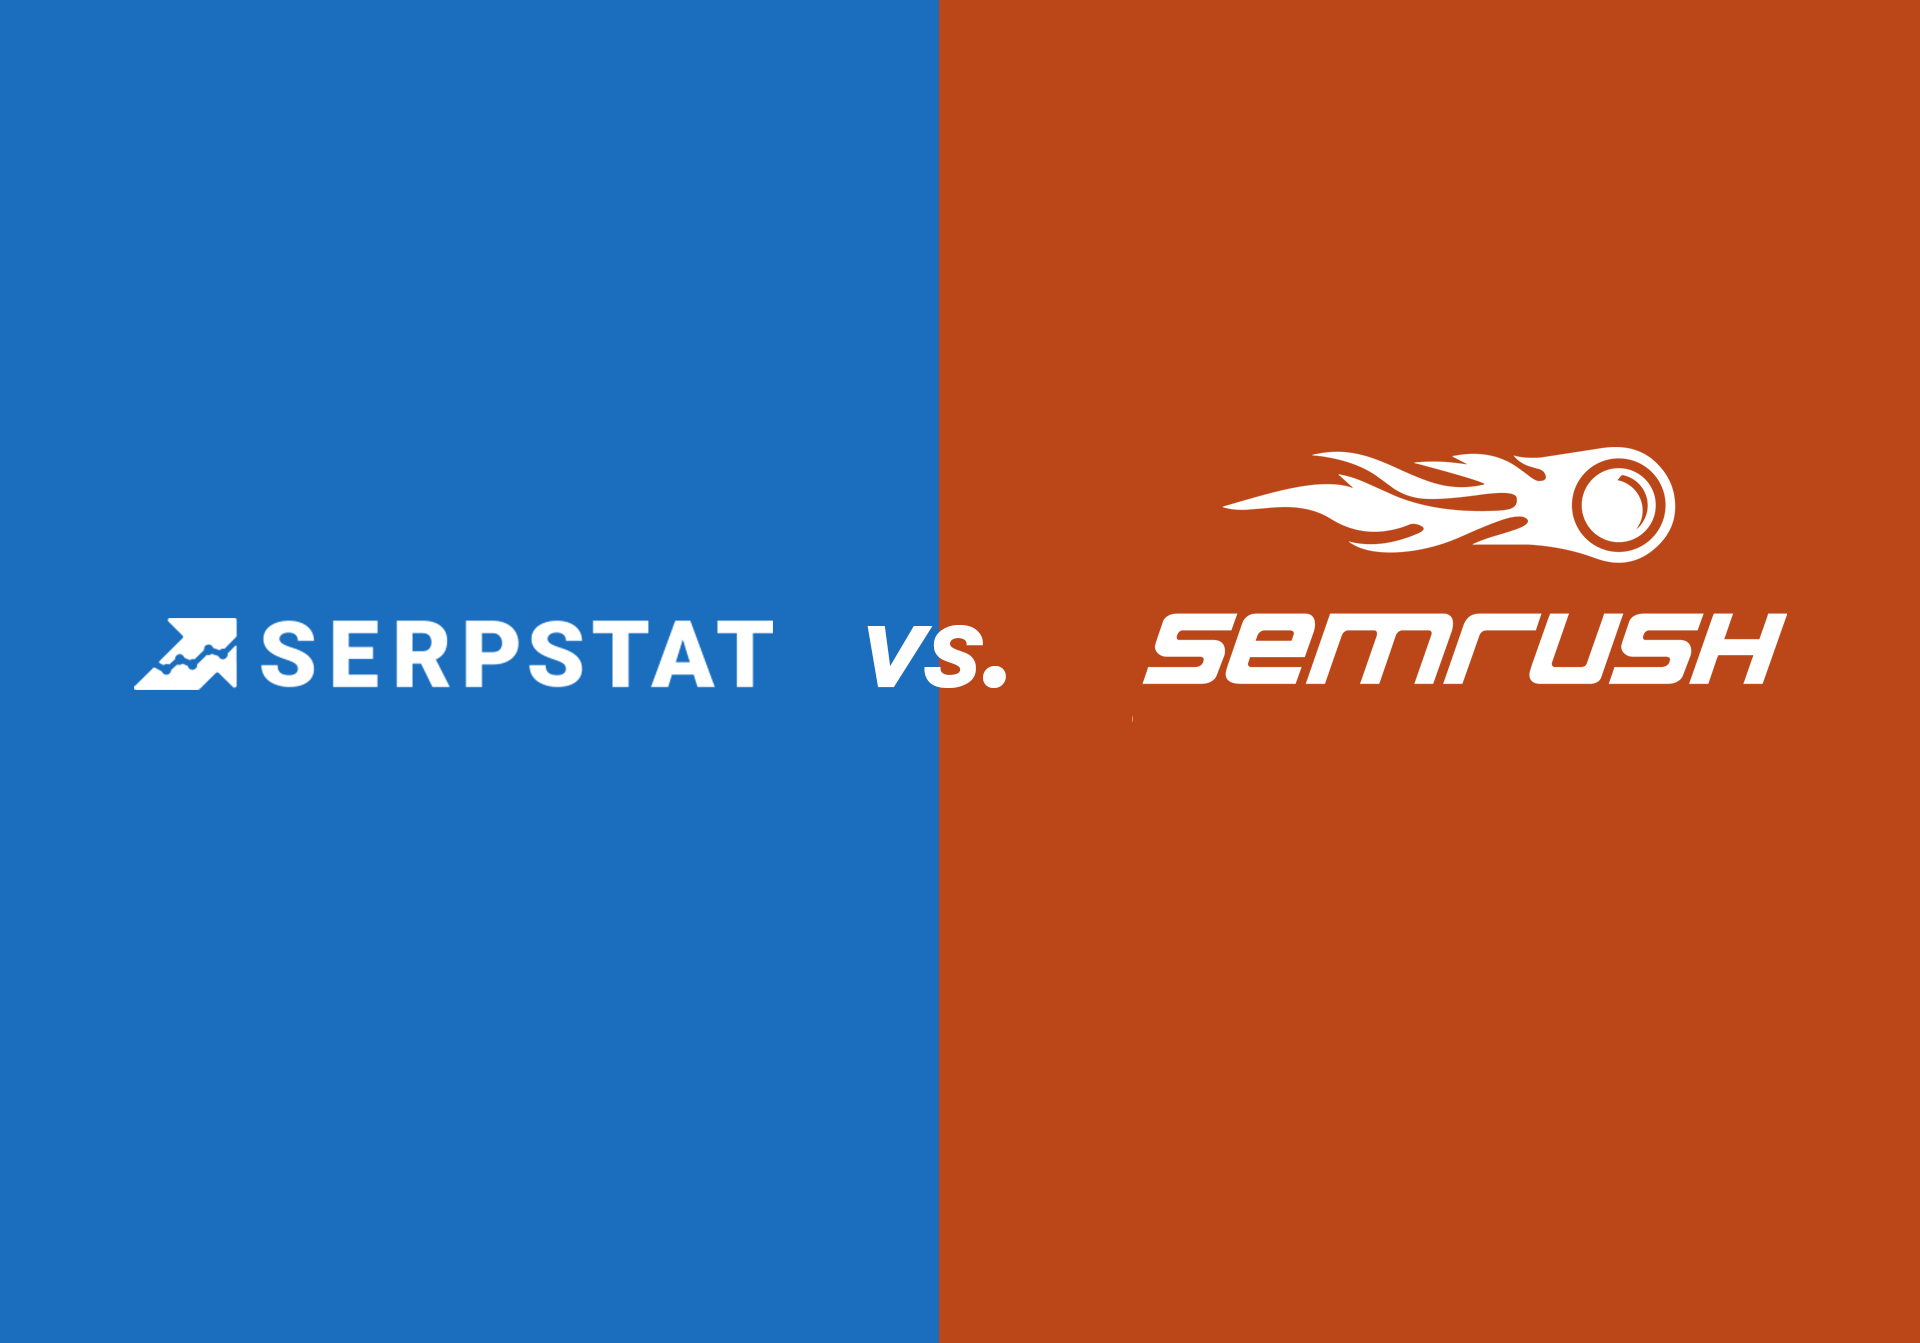 Get Semrush Seo Software On Credit